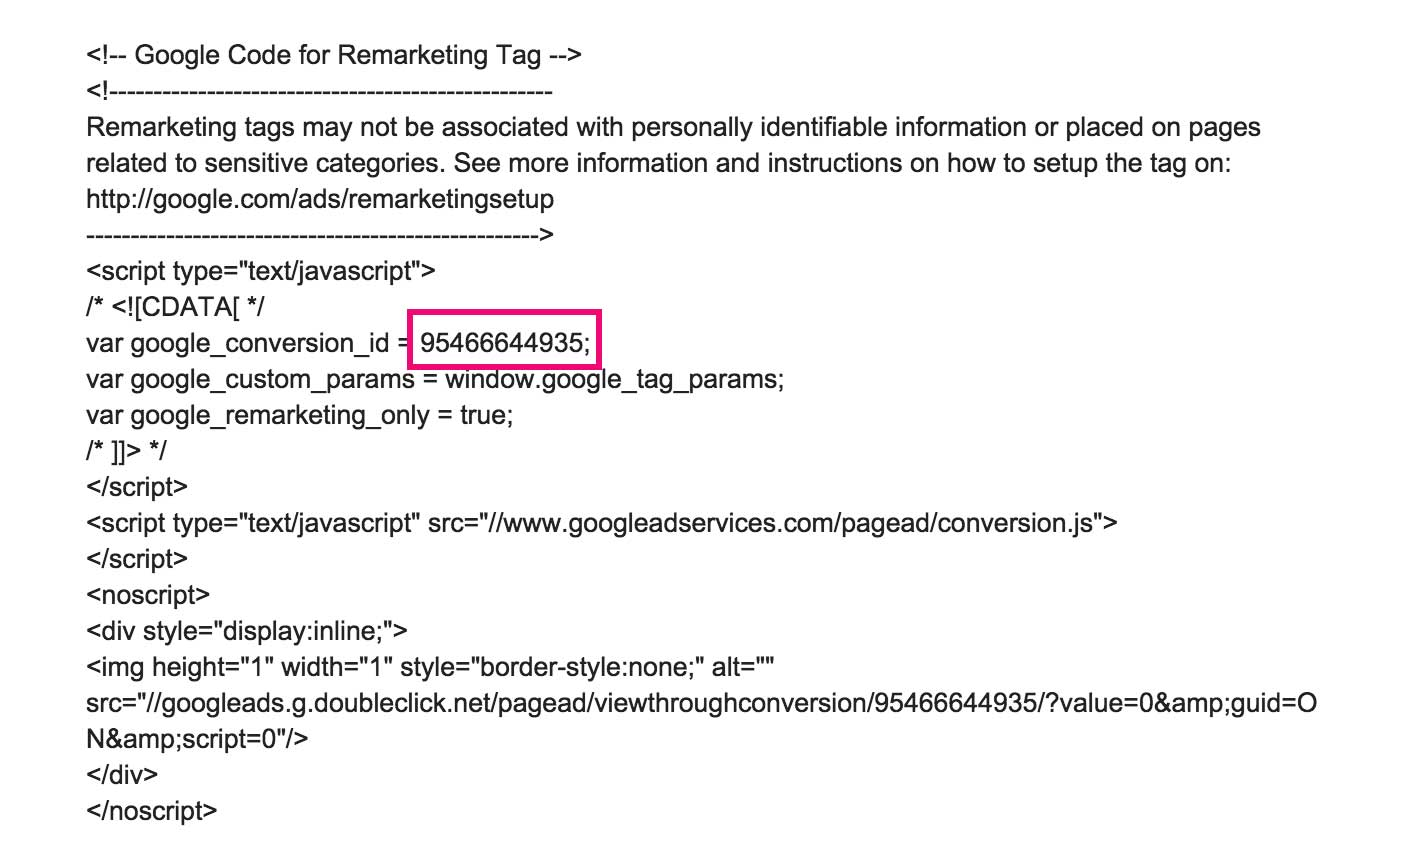 Screenshot showing google remarketing tag information